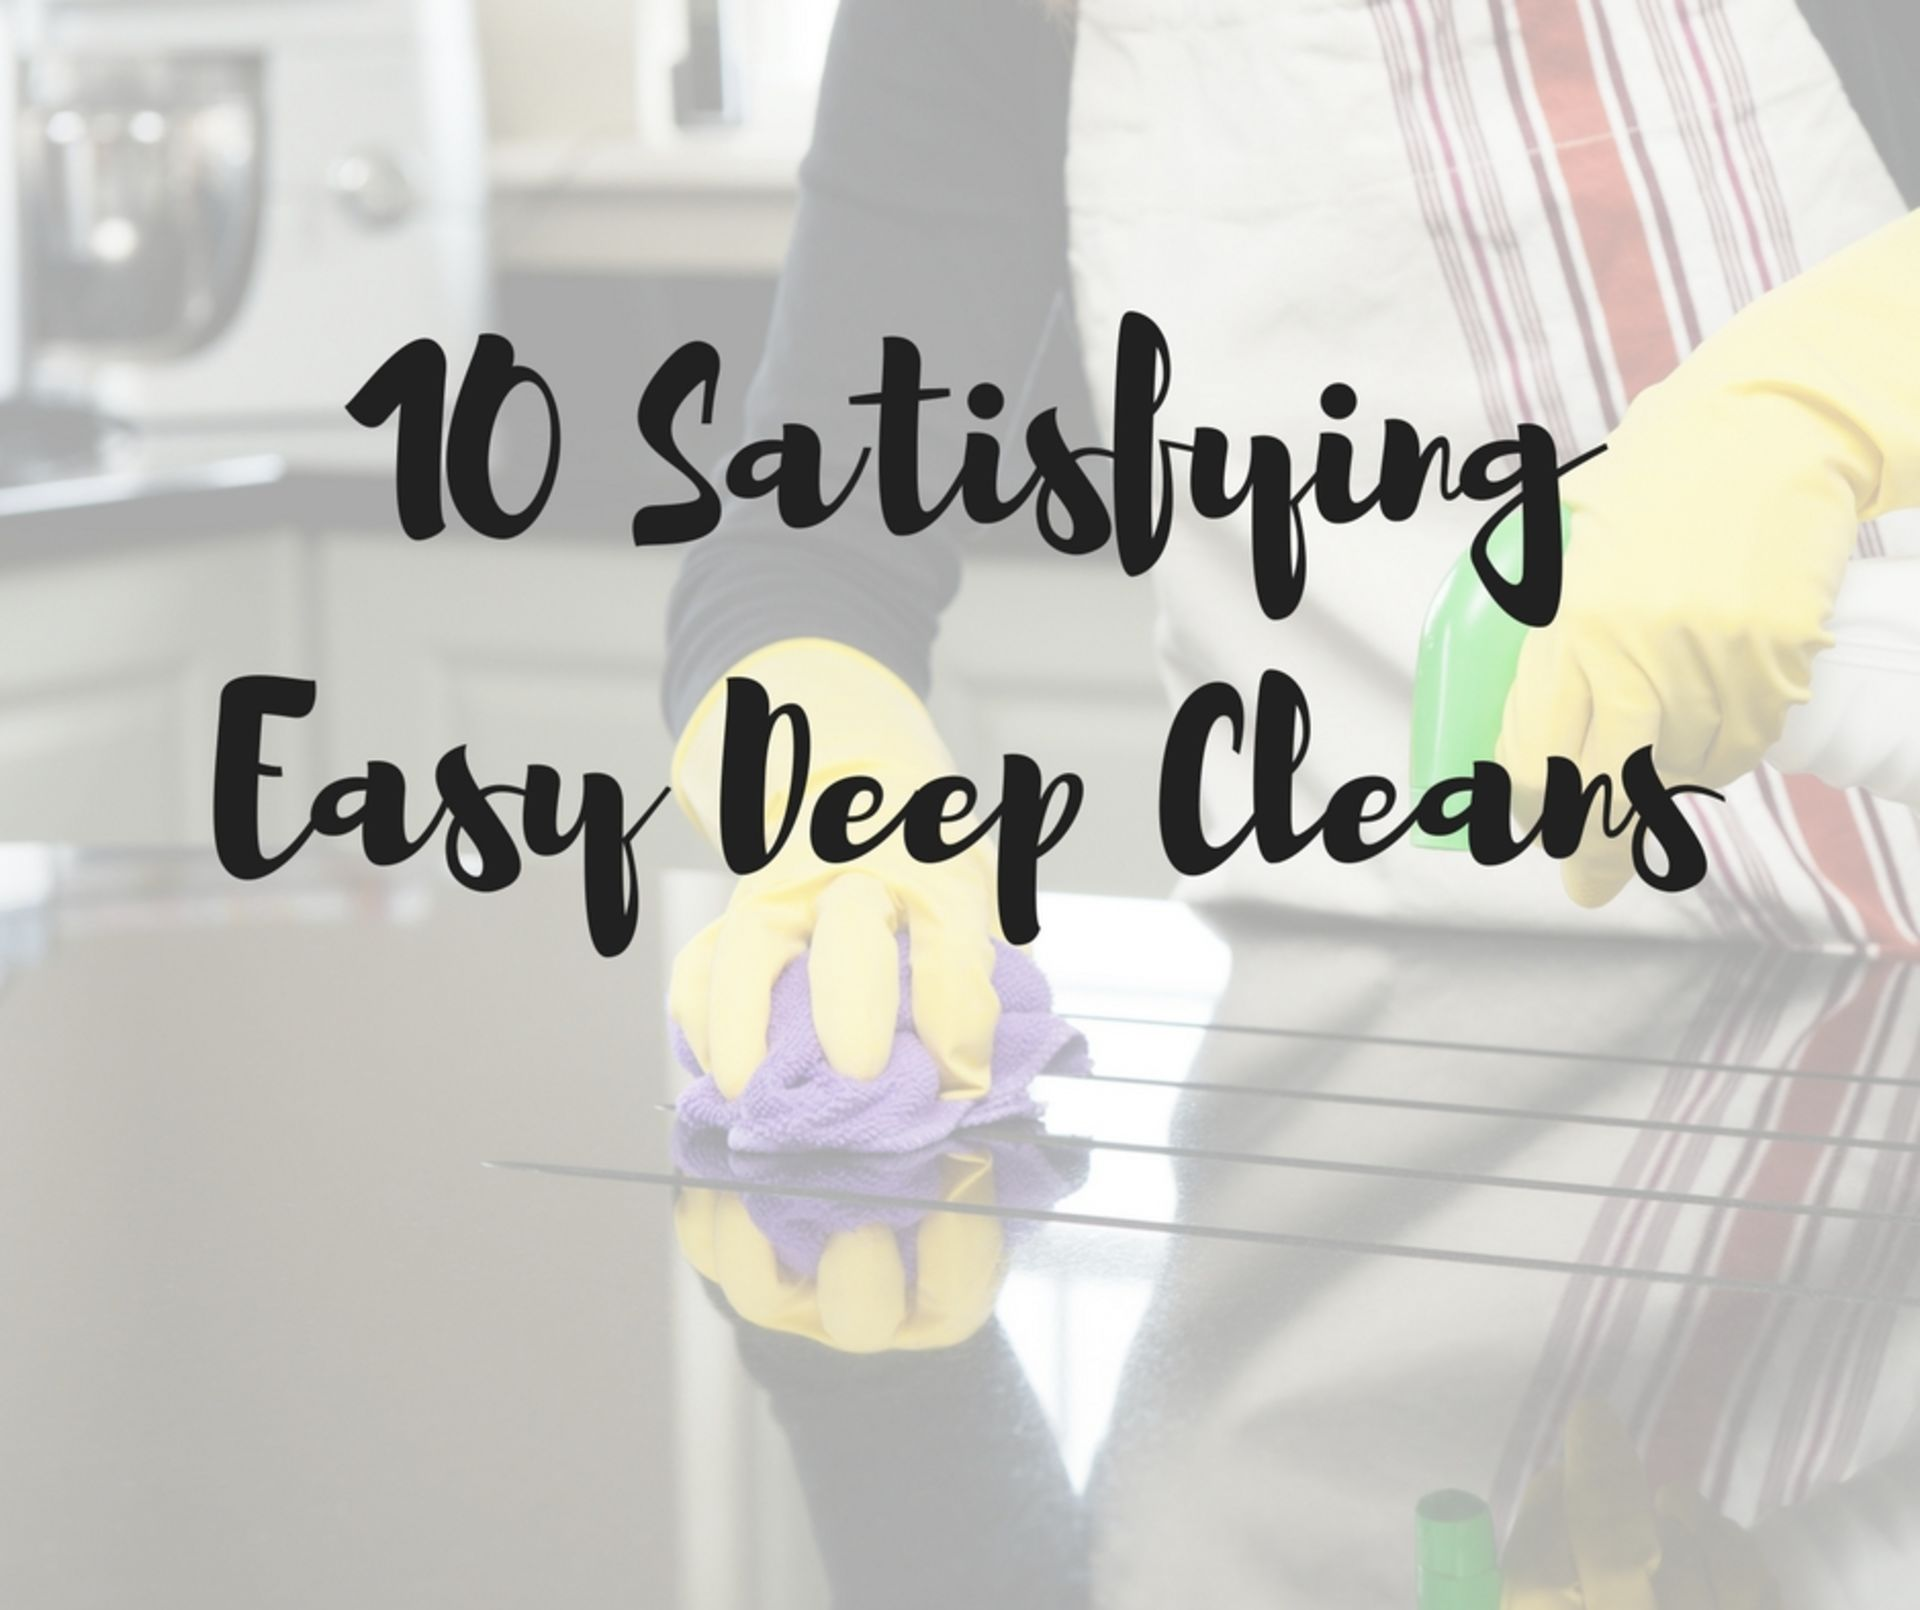 10 Satisfying Easy Deep Cleans!